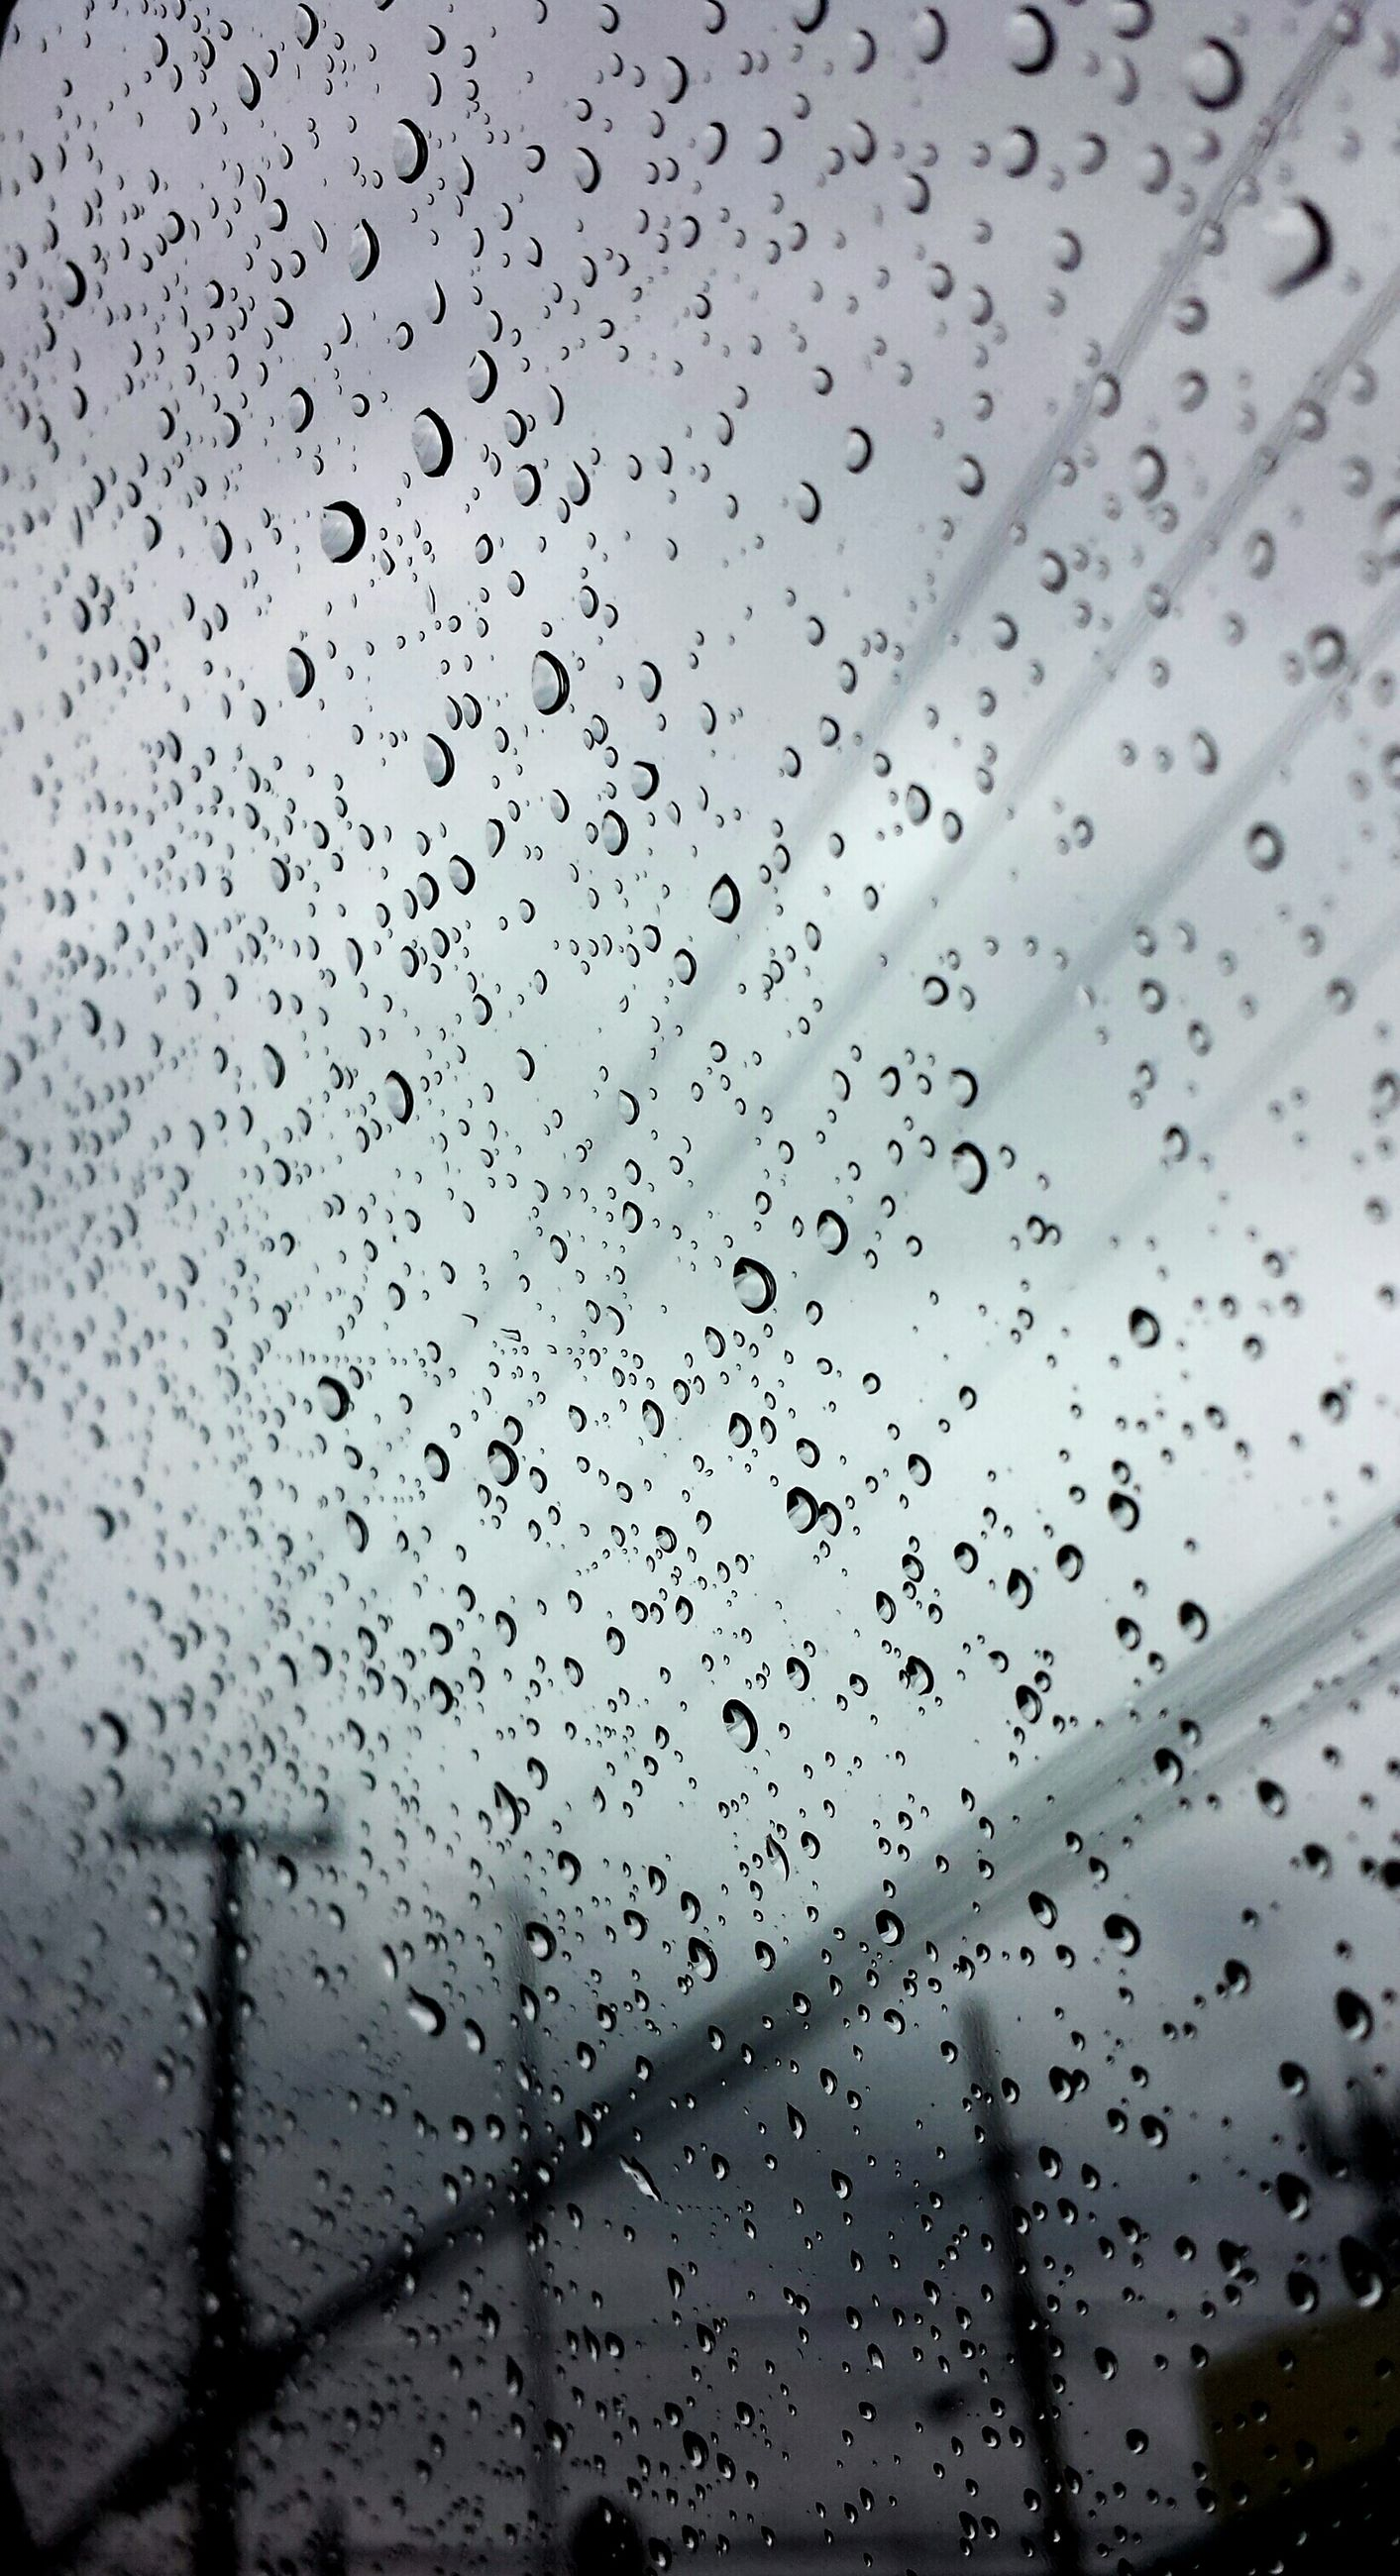 drop, wet, window, water, sky, rain, indoors, flock of birds, flying, animal themes, weather, backgrounds, full frame, transparent, glass - material, bird, silhouette, raindrop, low angle view